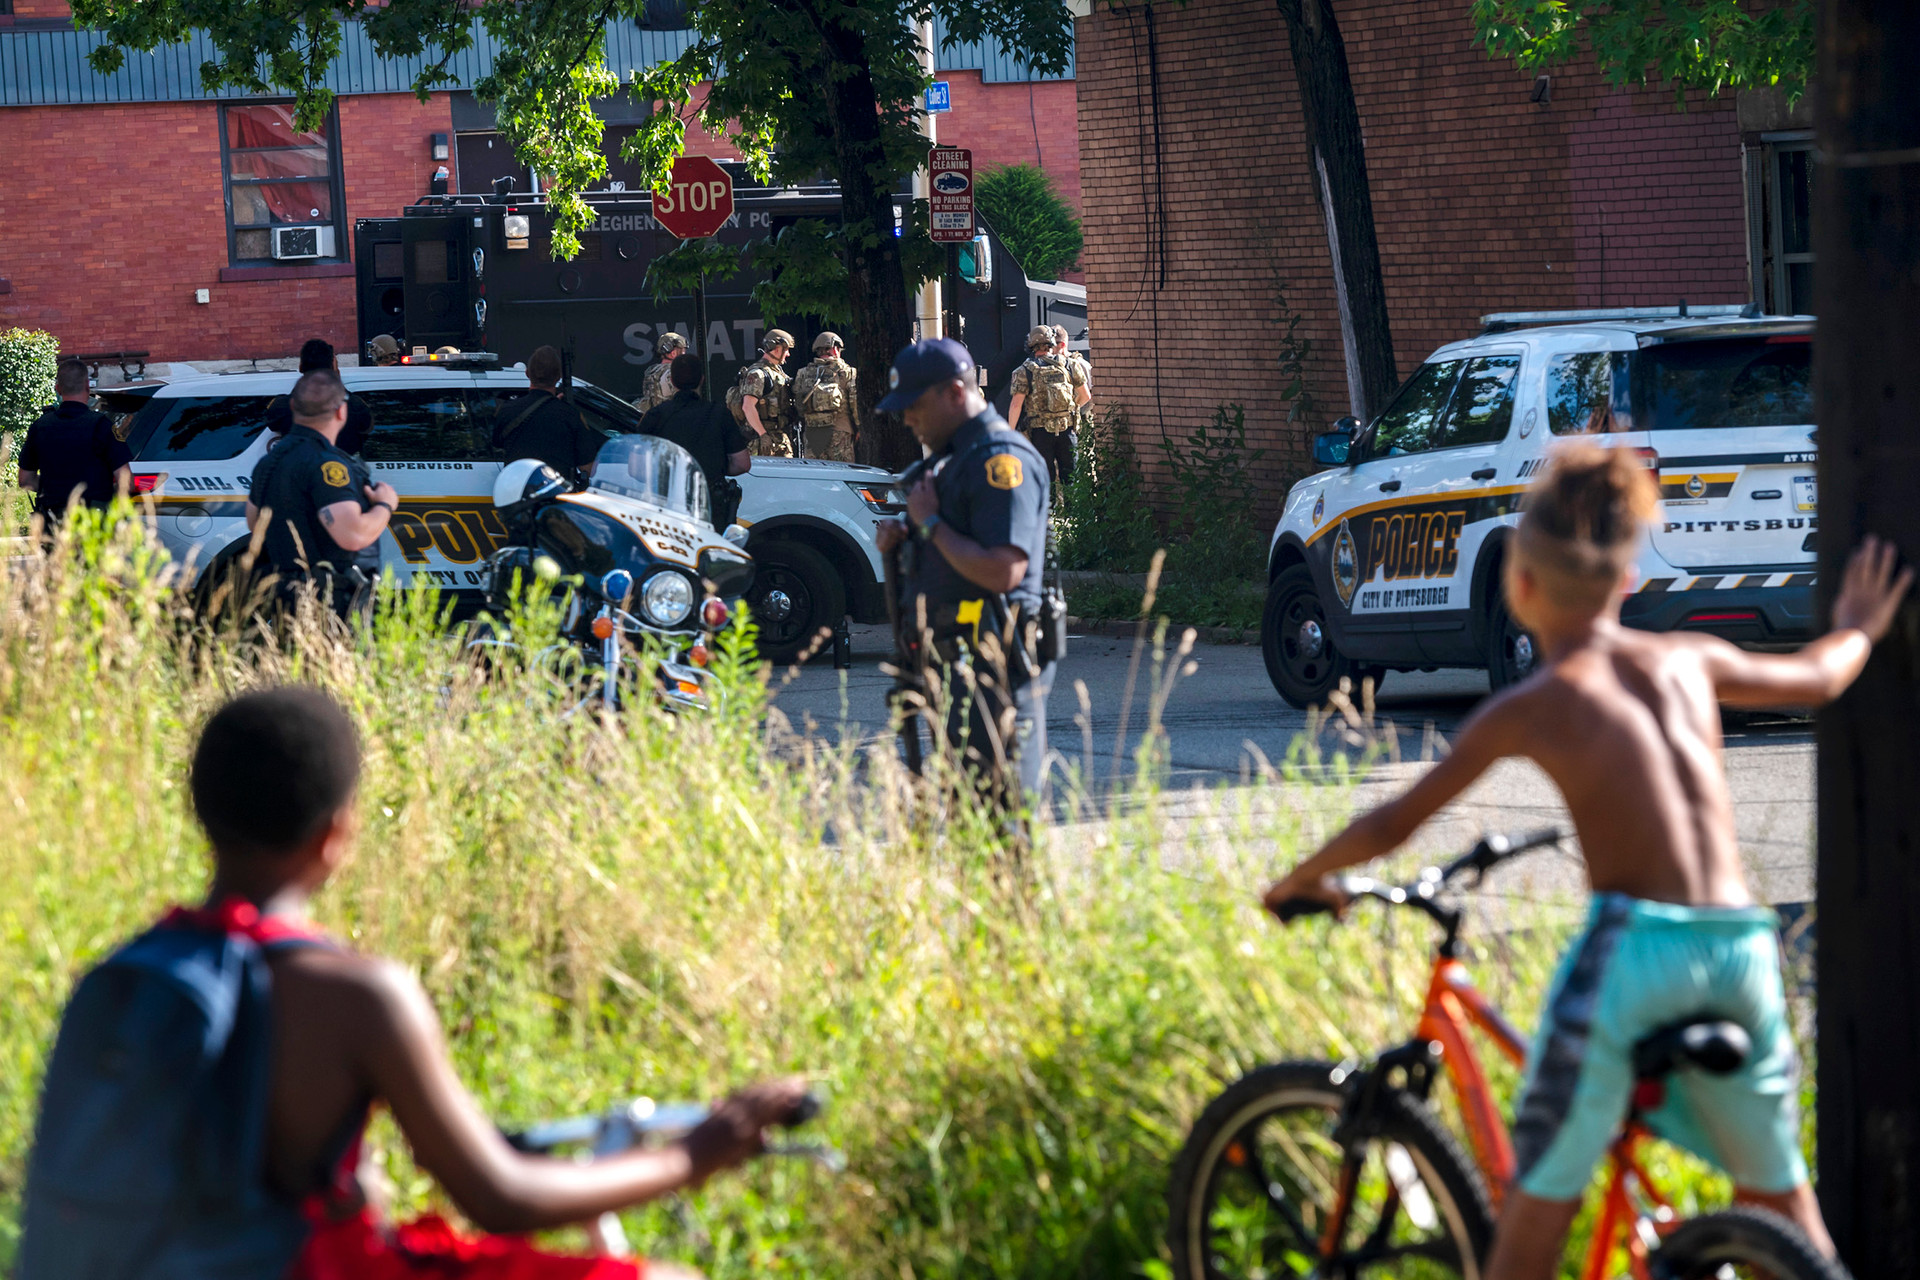 Children watch as a SWAT team arrives to lend support to City of Pittsburgh Police officers as they attempt to serve an arrest warrant, Tuesday, July 16, 2019, on the intersection of Collier Street and Hamilton Avenue in Homewood.